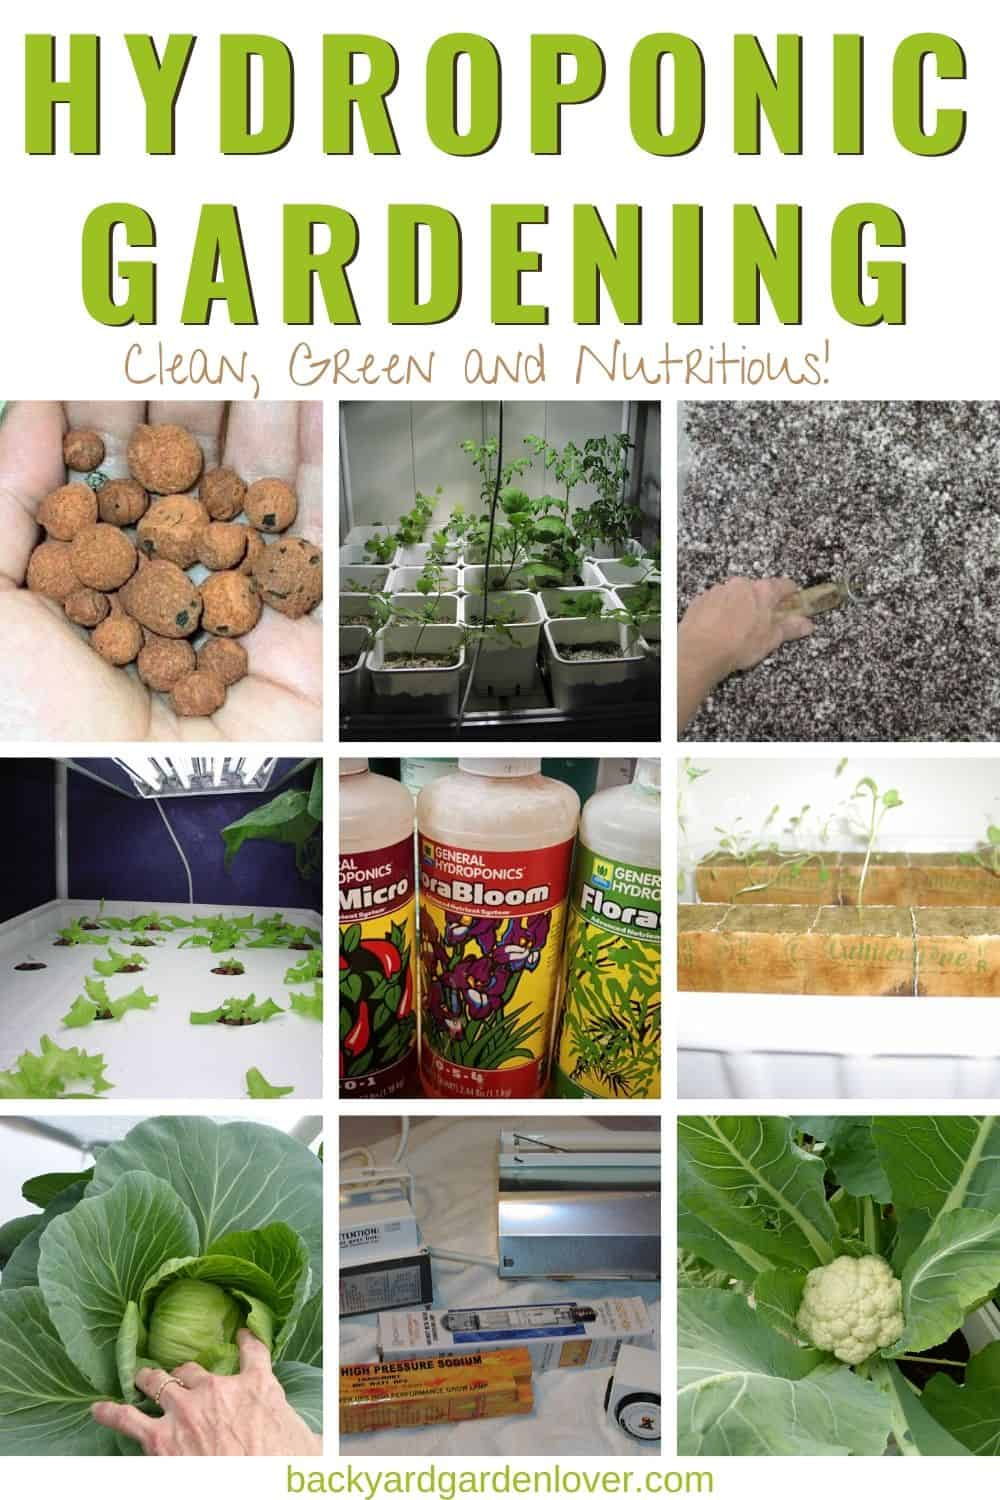 Hydroponic gardening in pictures - Pinterest image